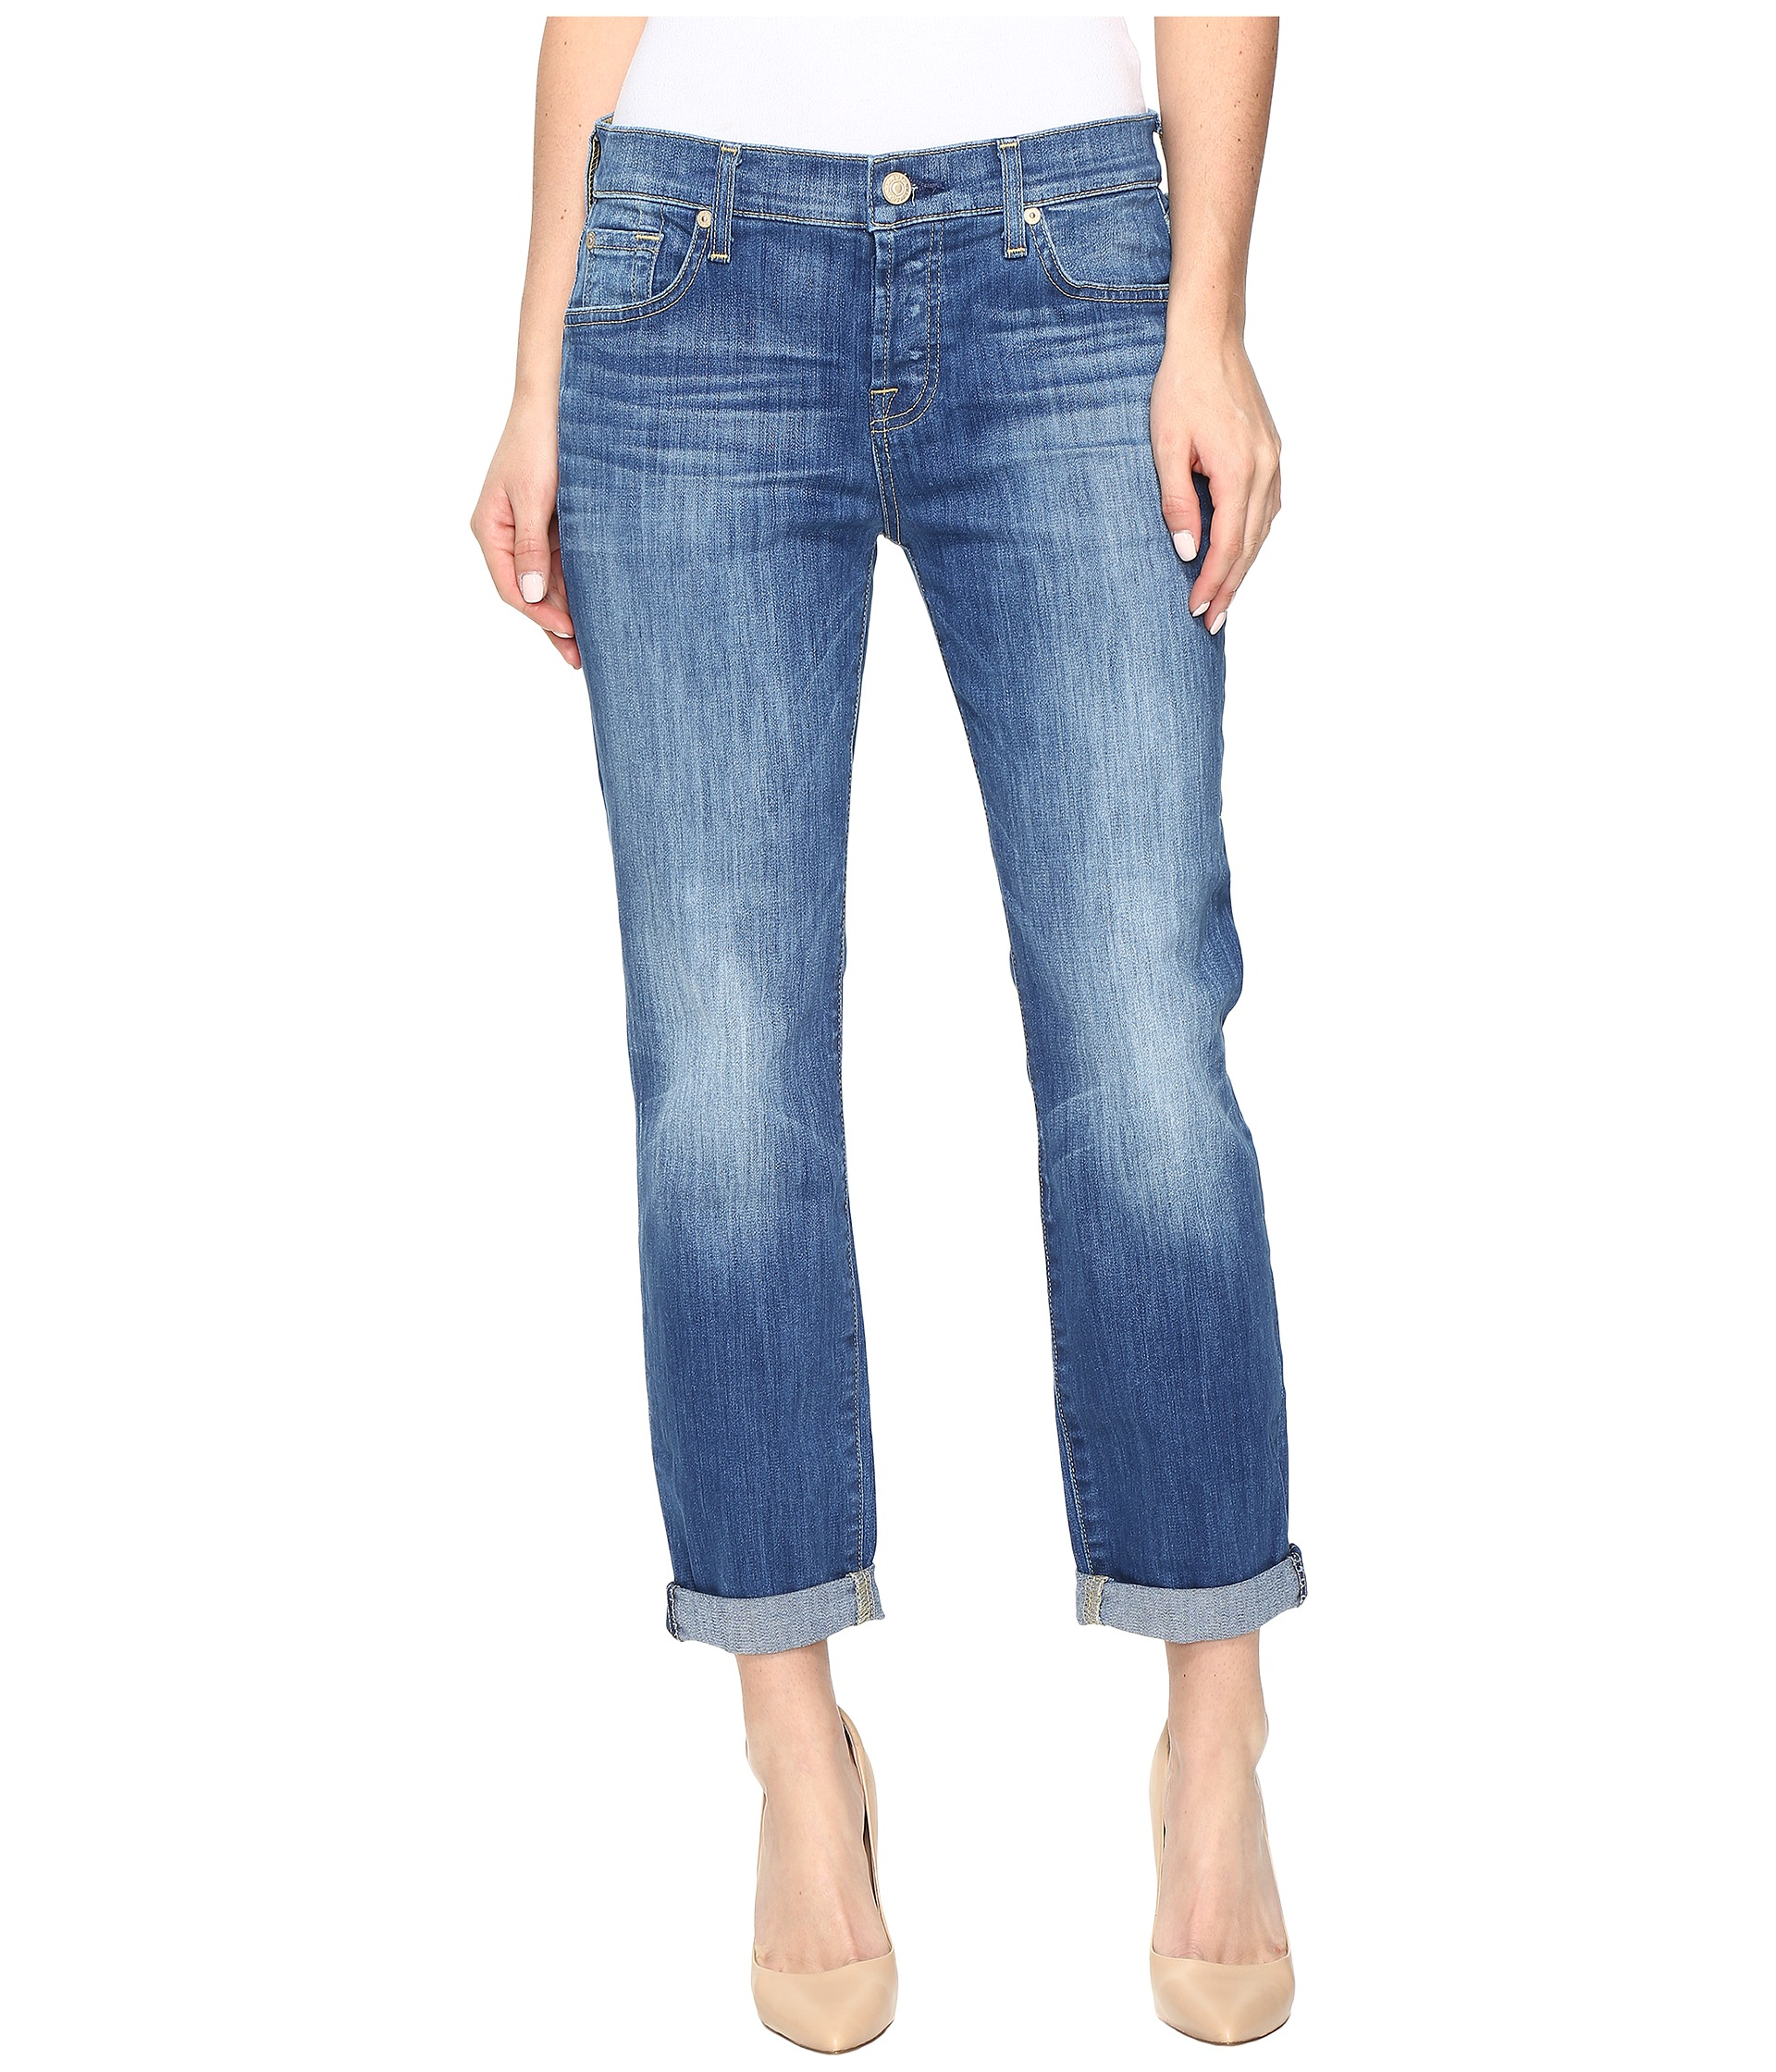 Jeans Women | Shipped Free at Zappos